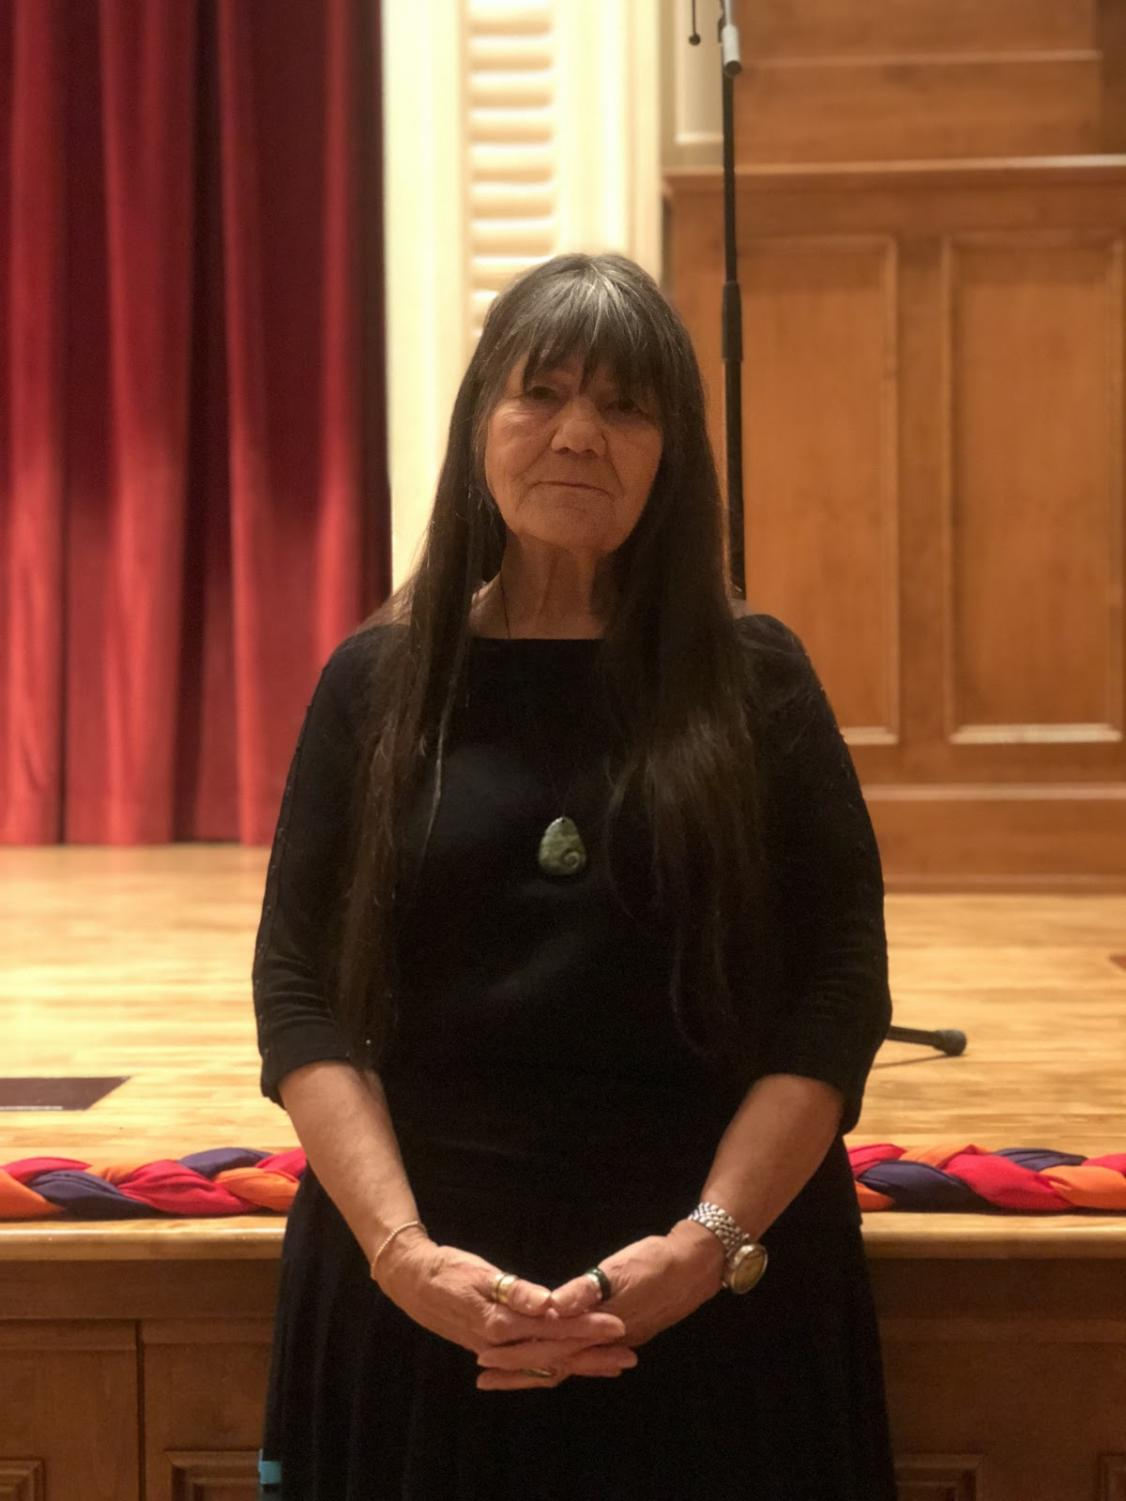 Professional Lakota/ Kiowa Storyteller, Dovie Thomason, speaks at the Fresno City College Auditorium March 6 at 7:30 p.m